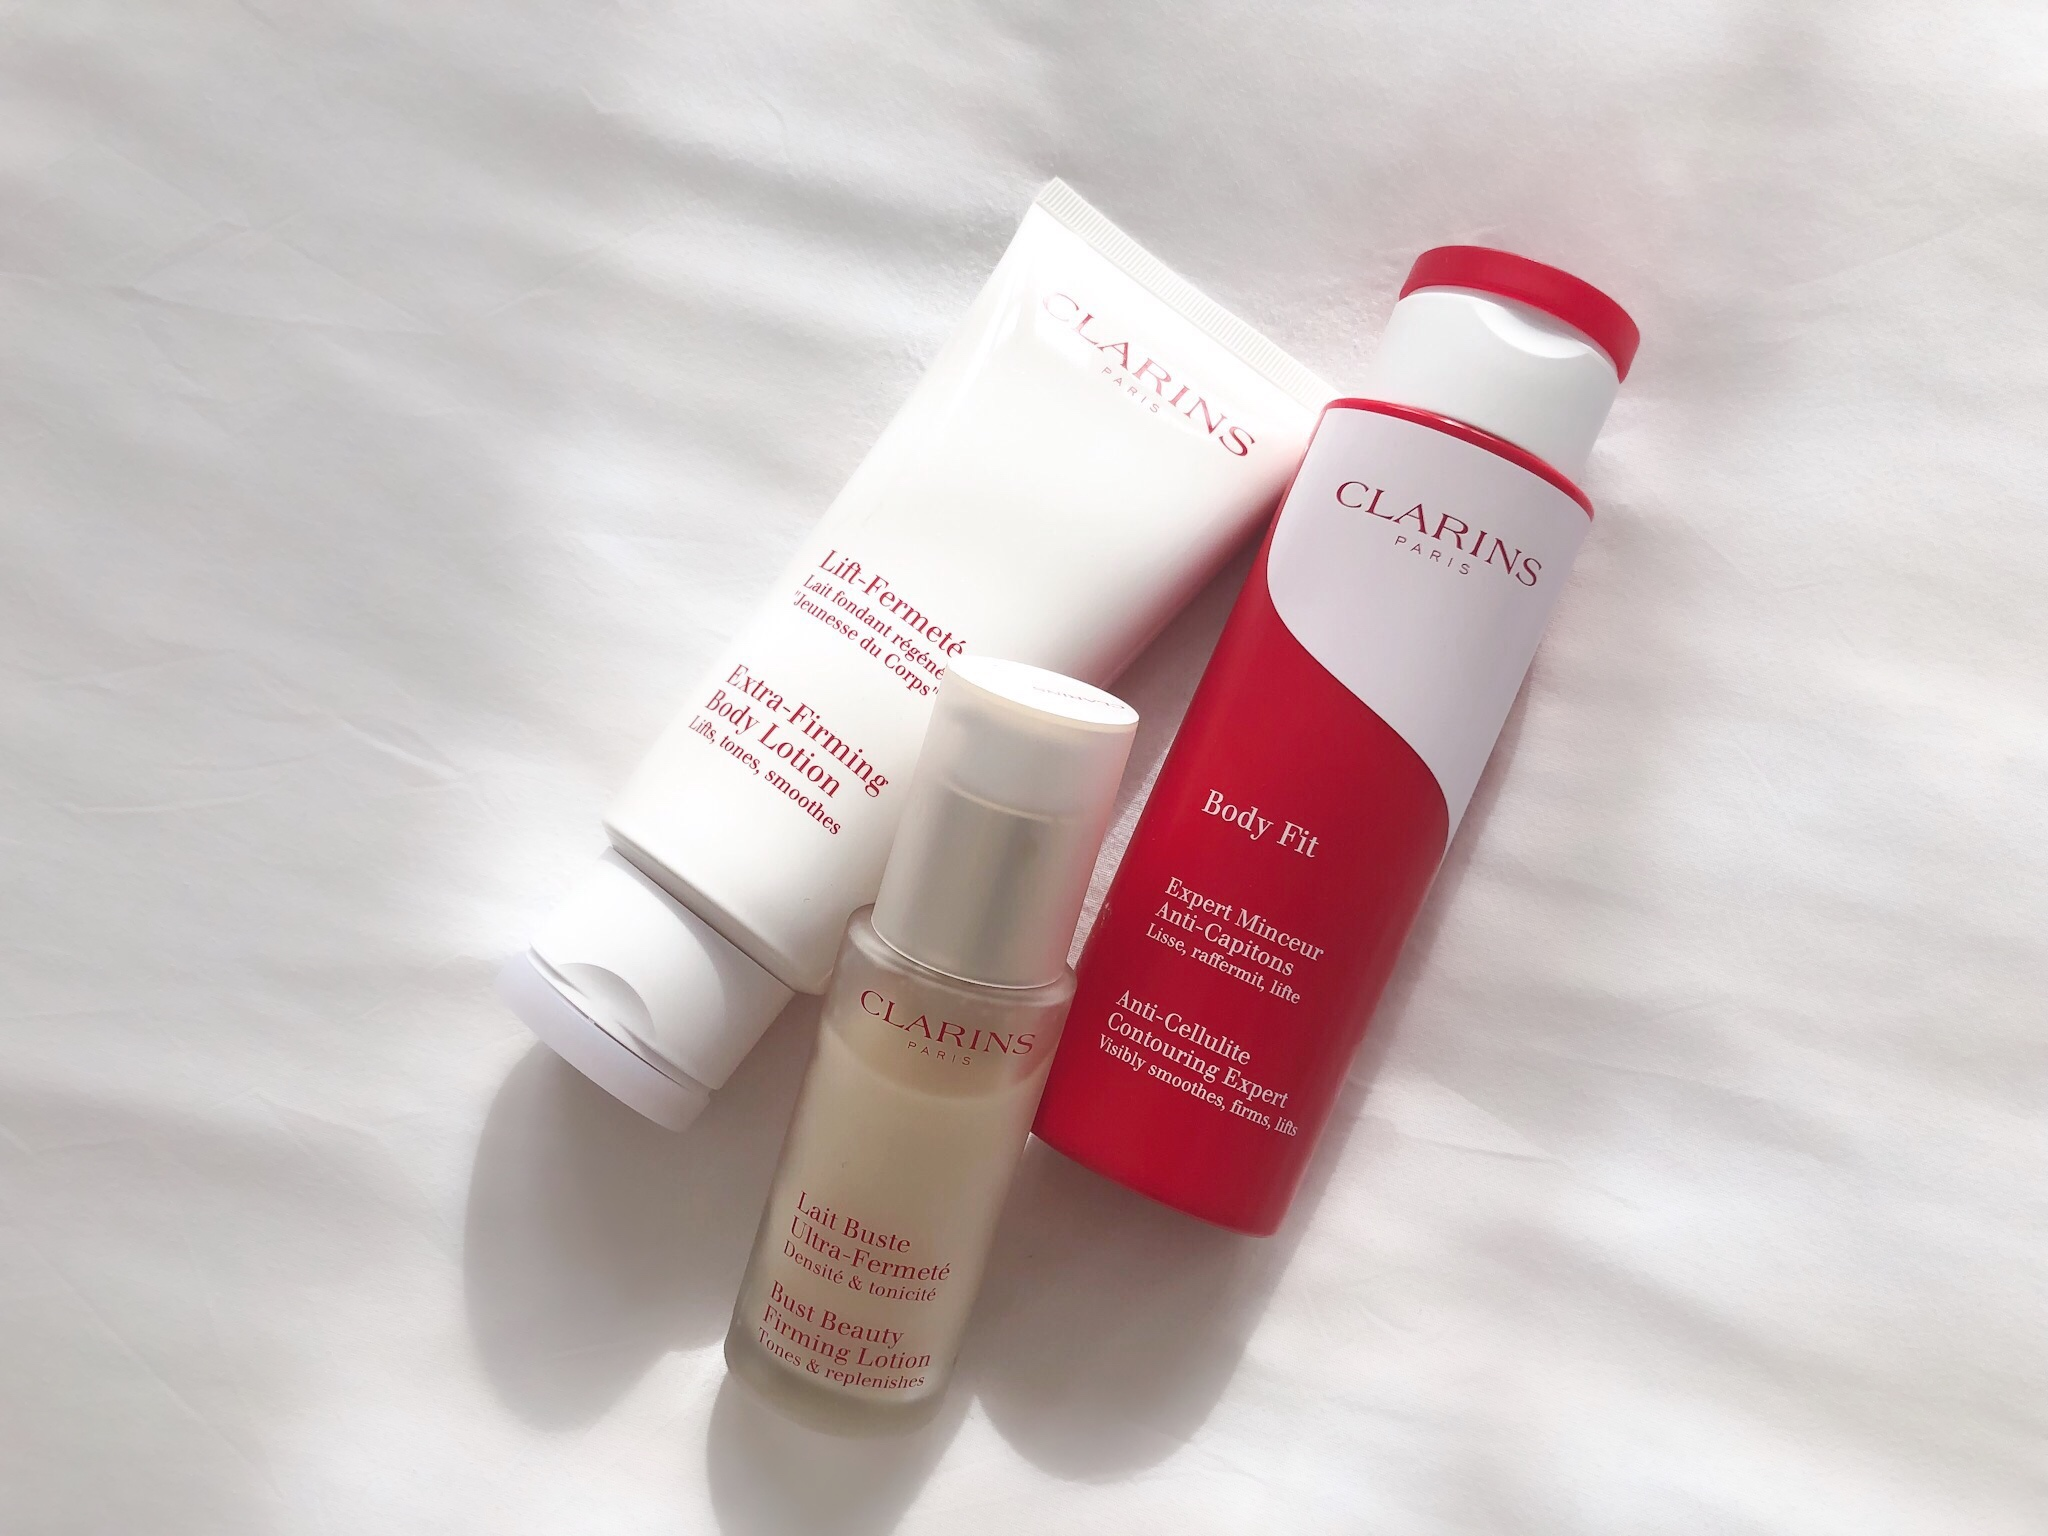 Clarins Body Care